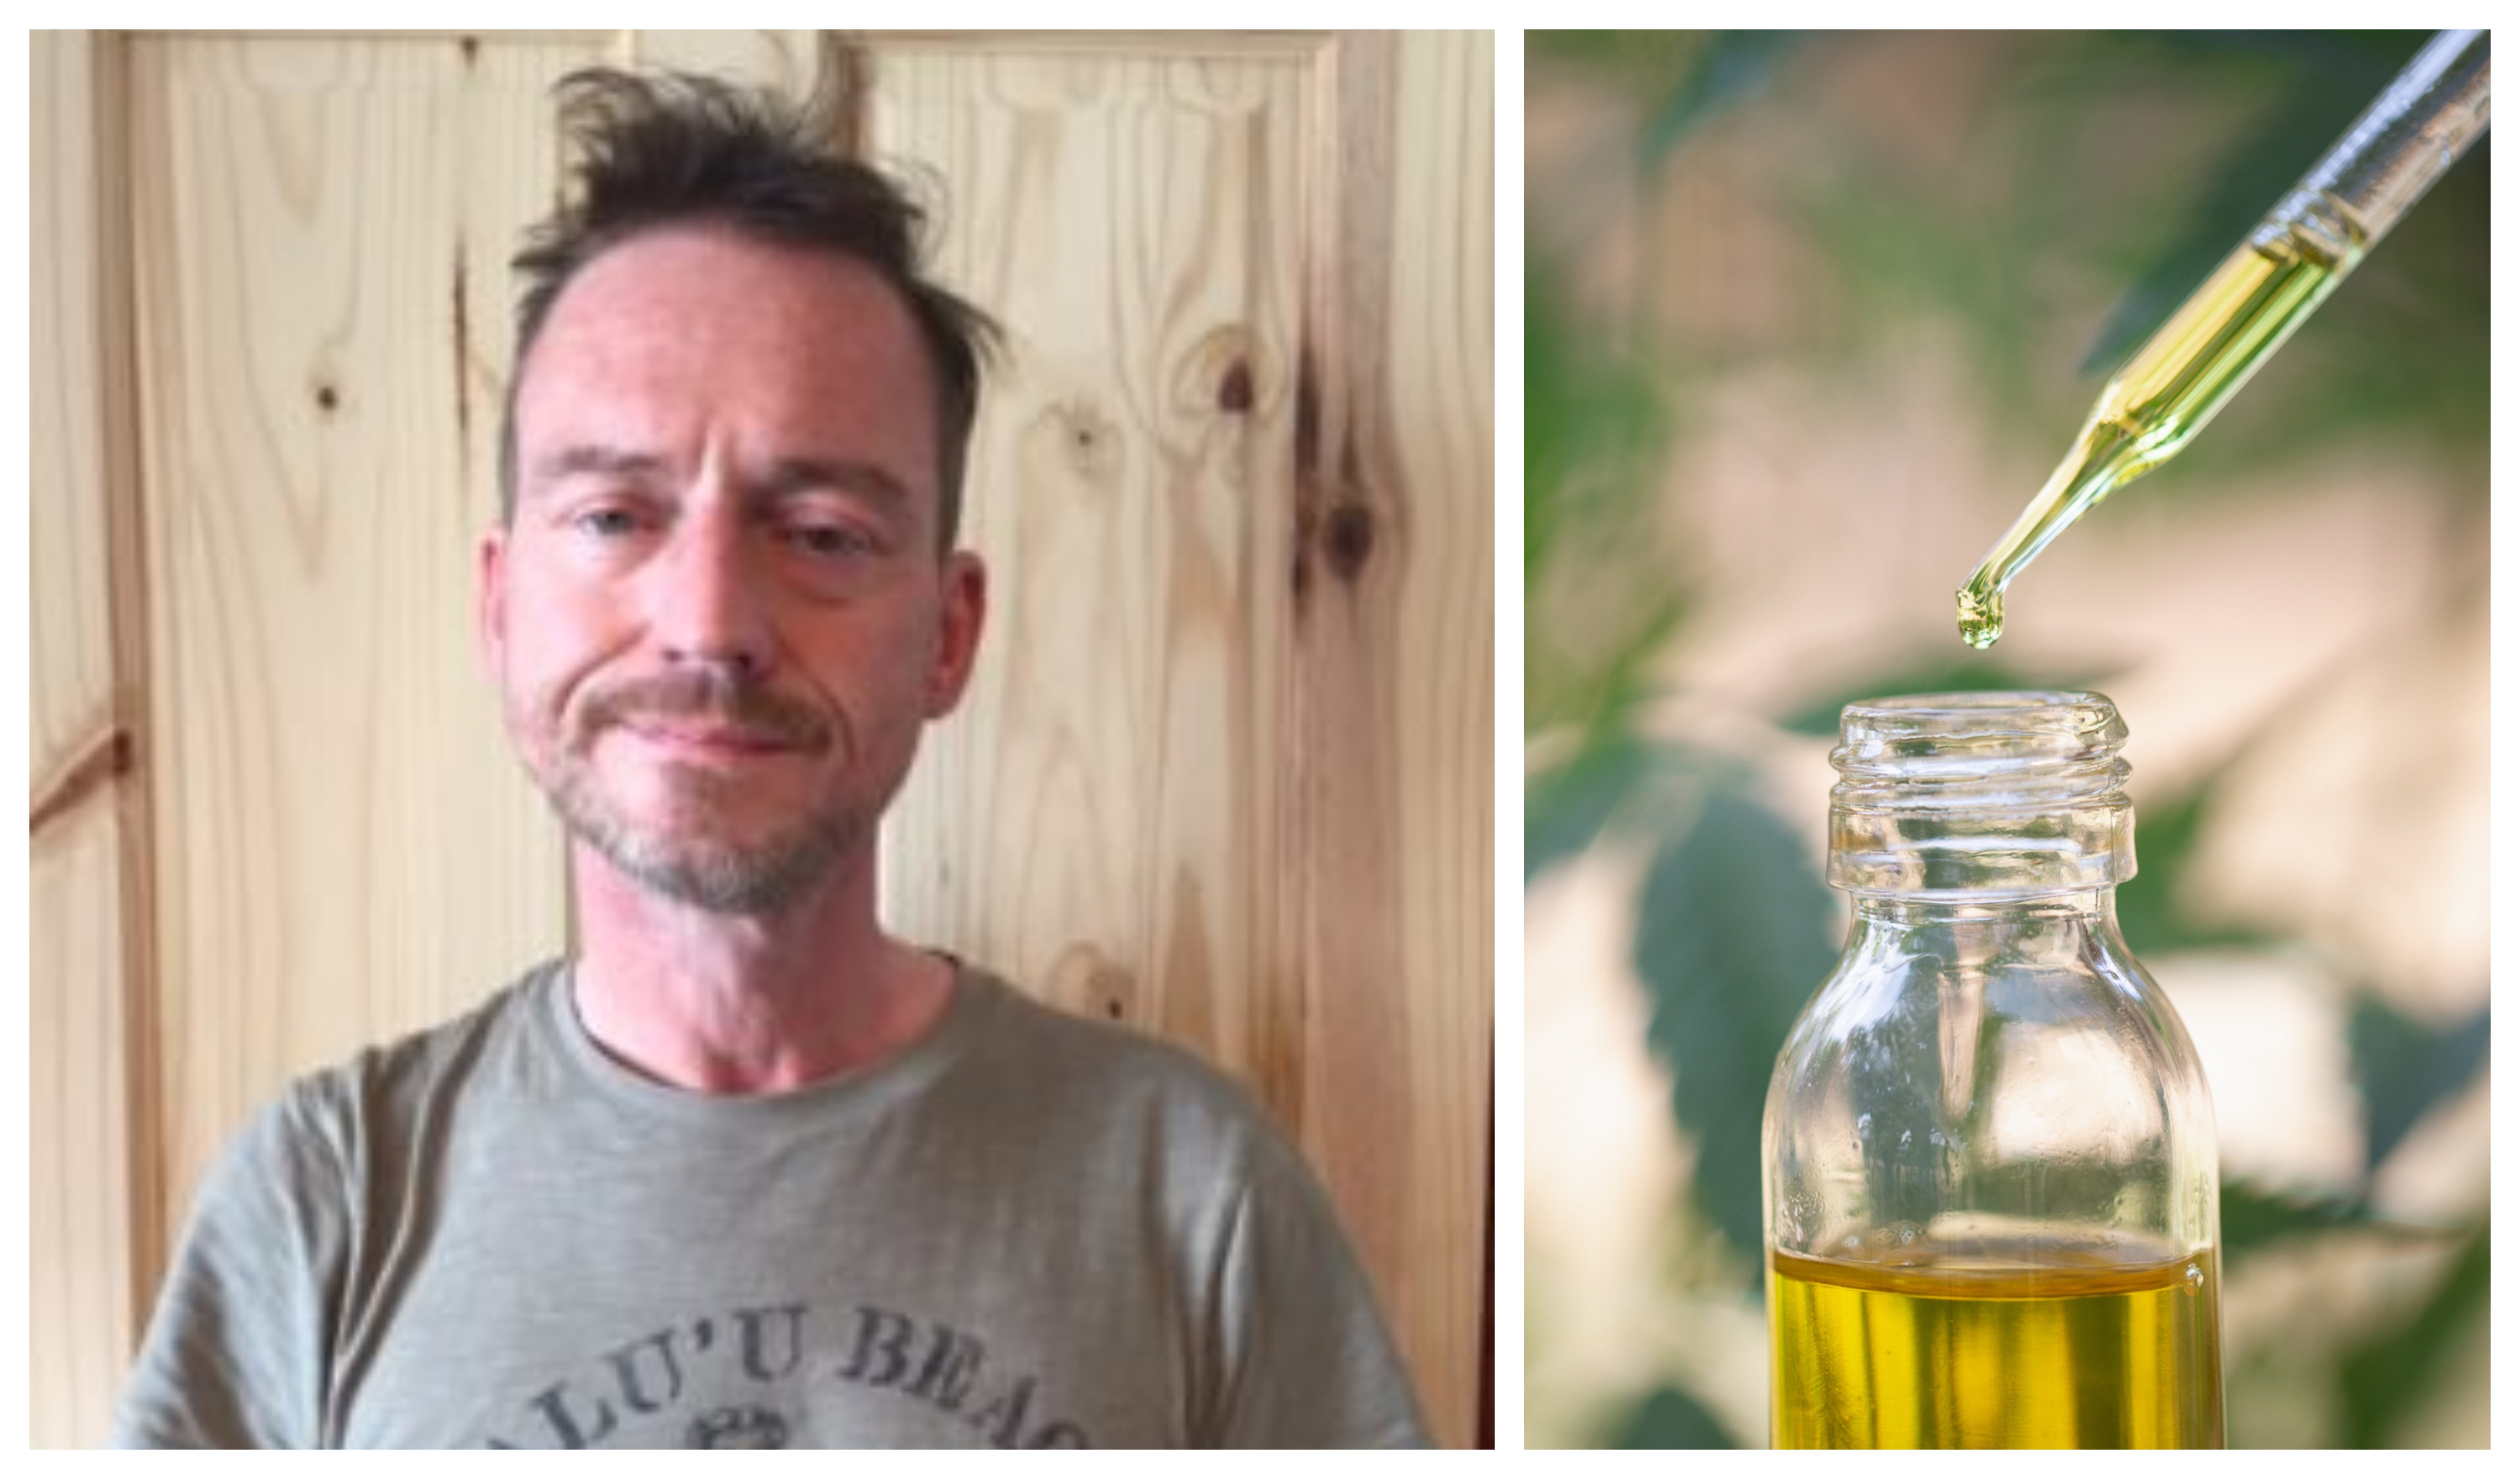 Colin Robson uses CBD oil to eased his pain.